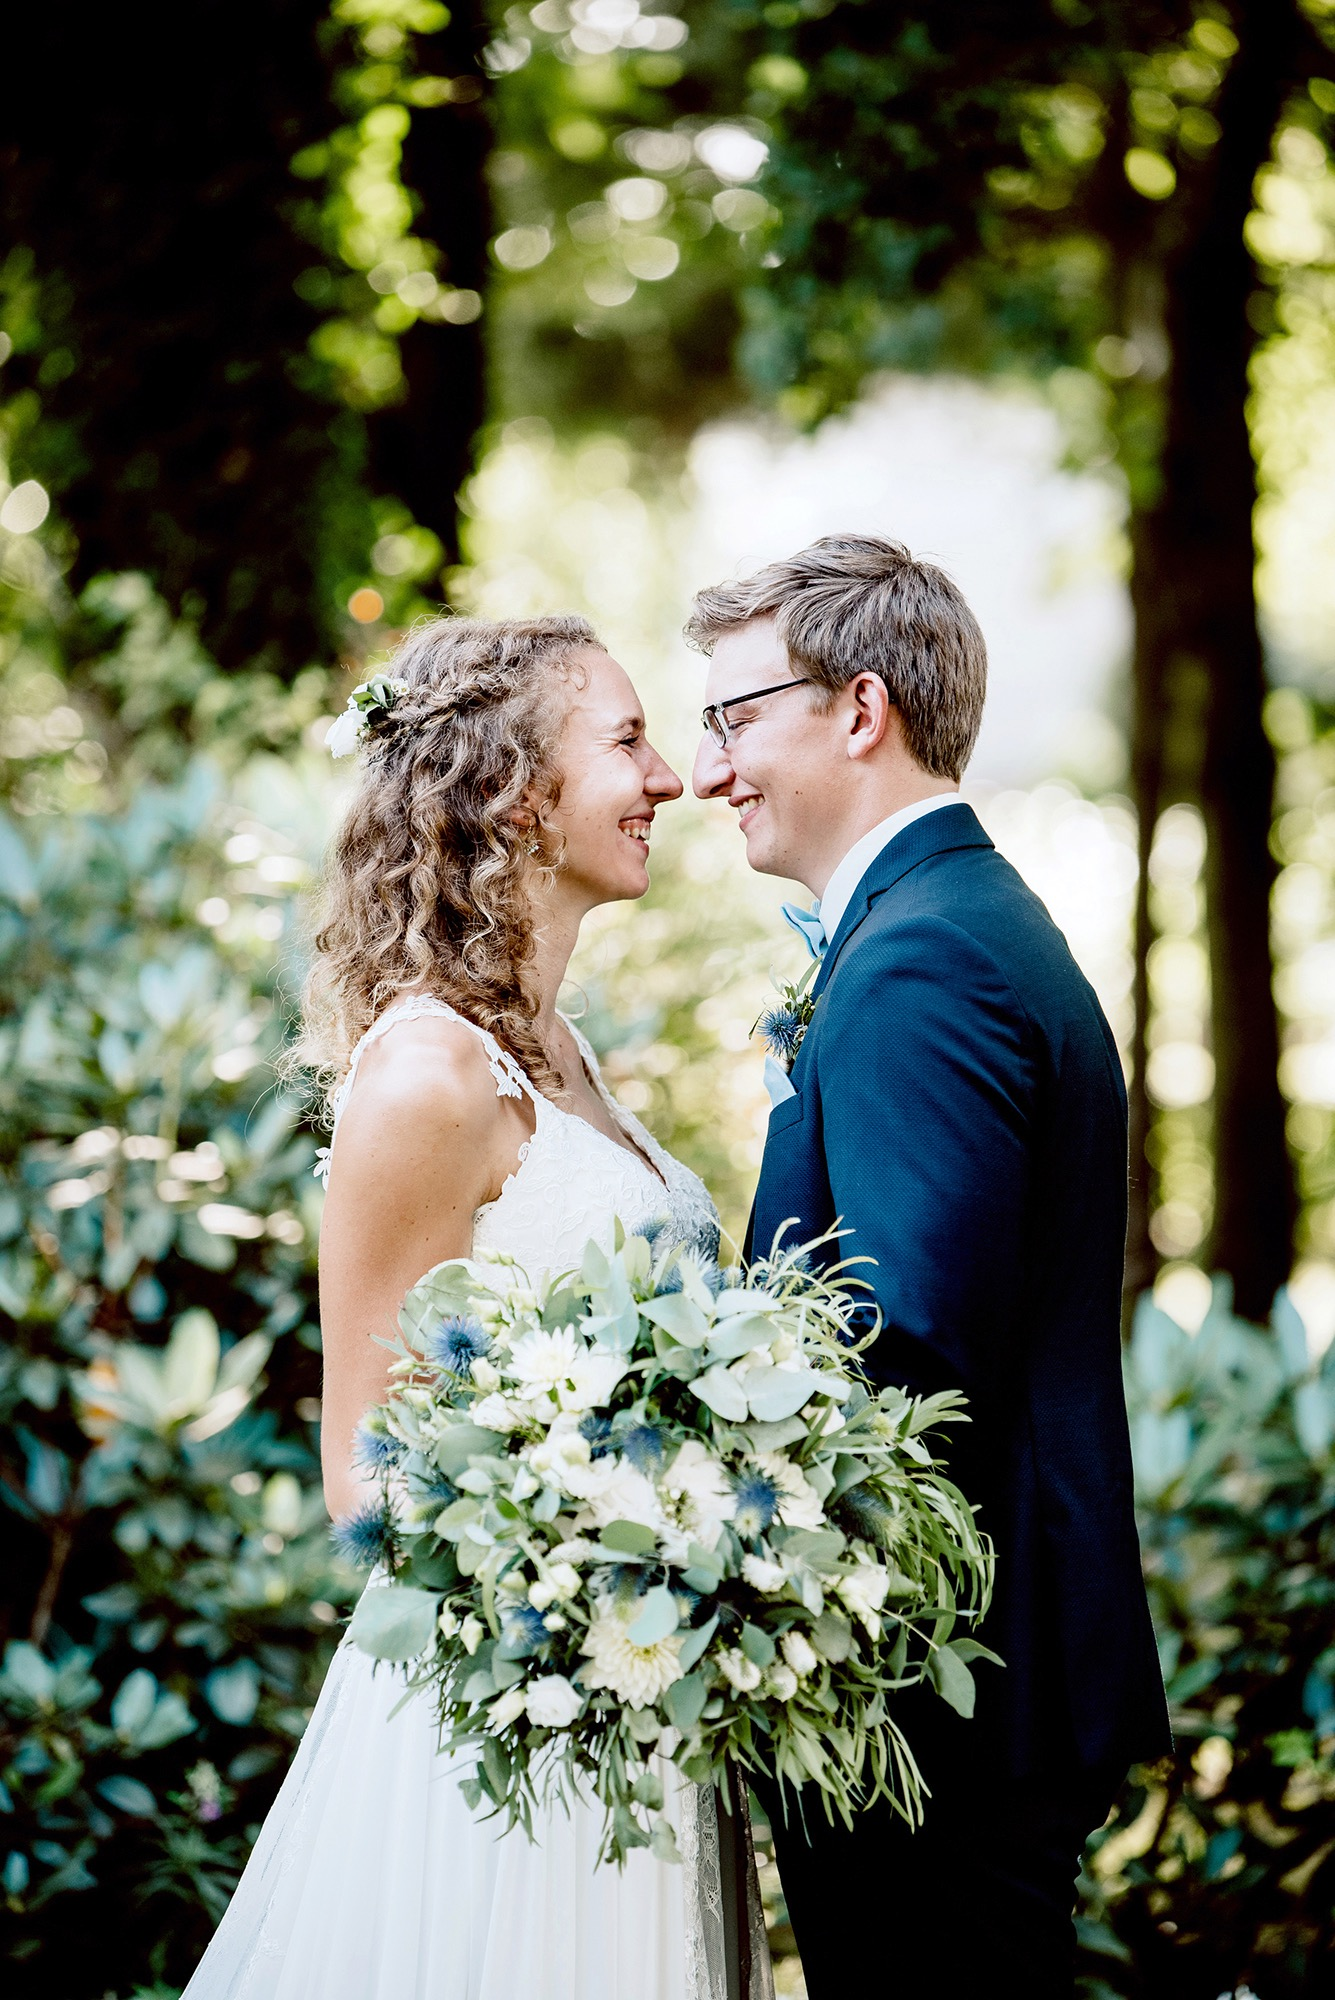 2_heiraten-landkreis-celle